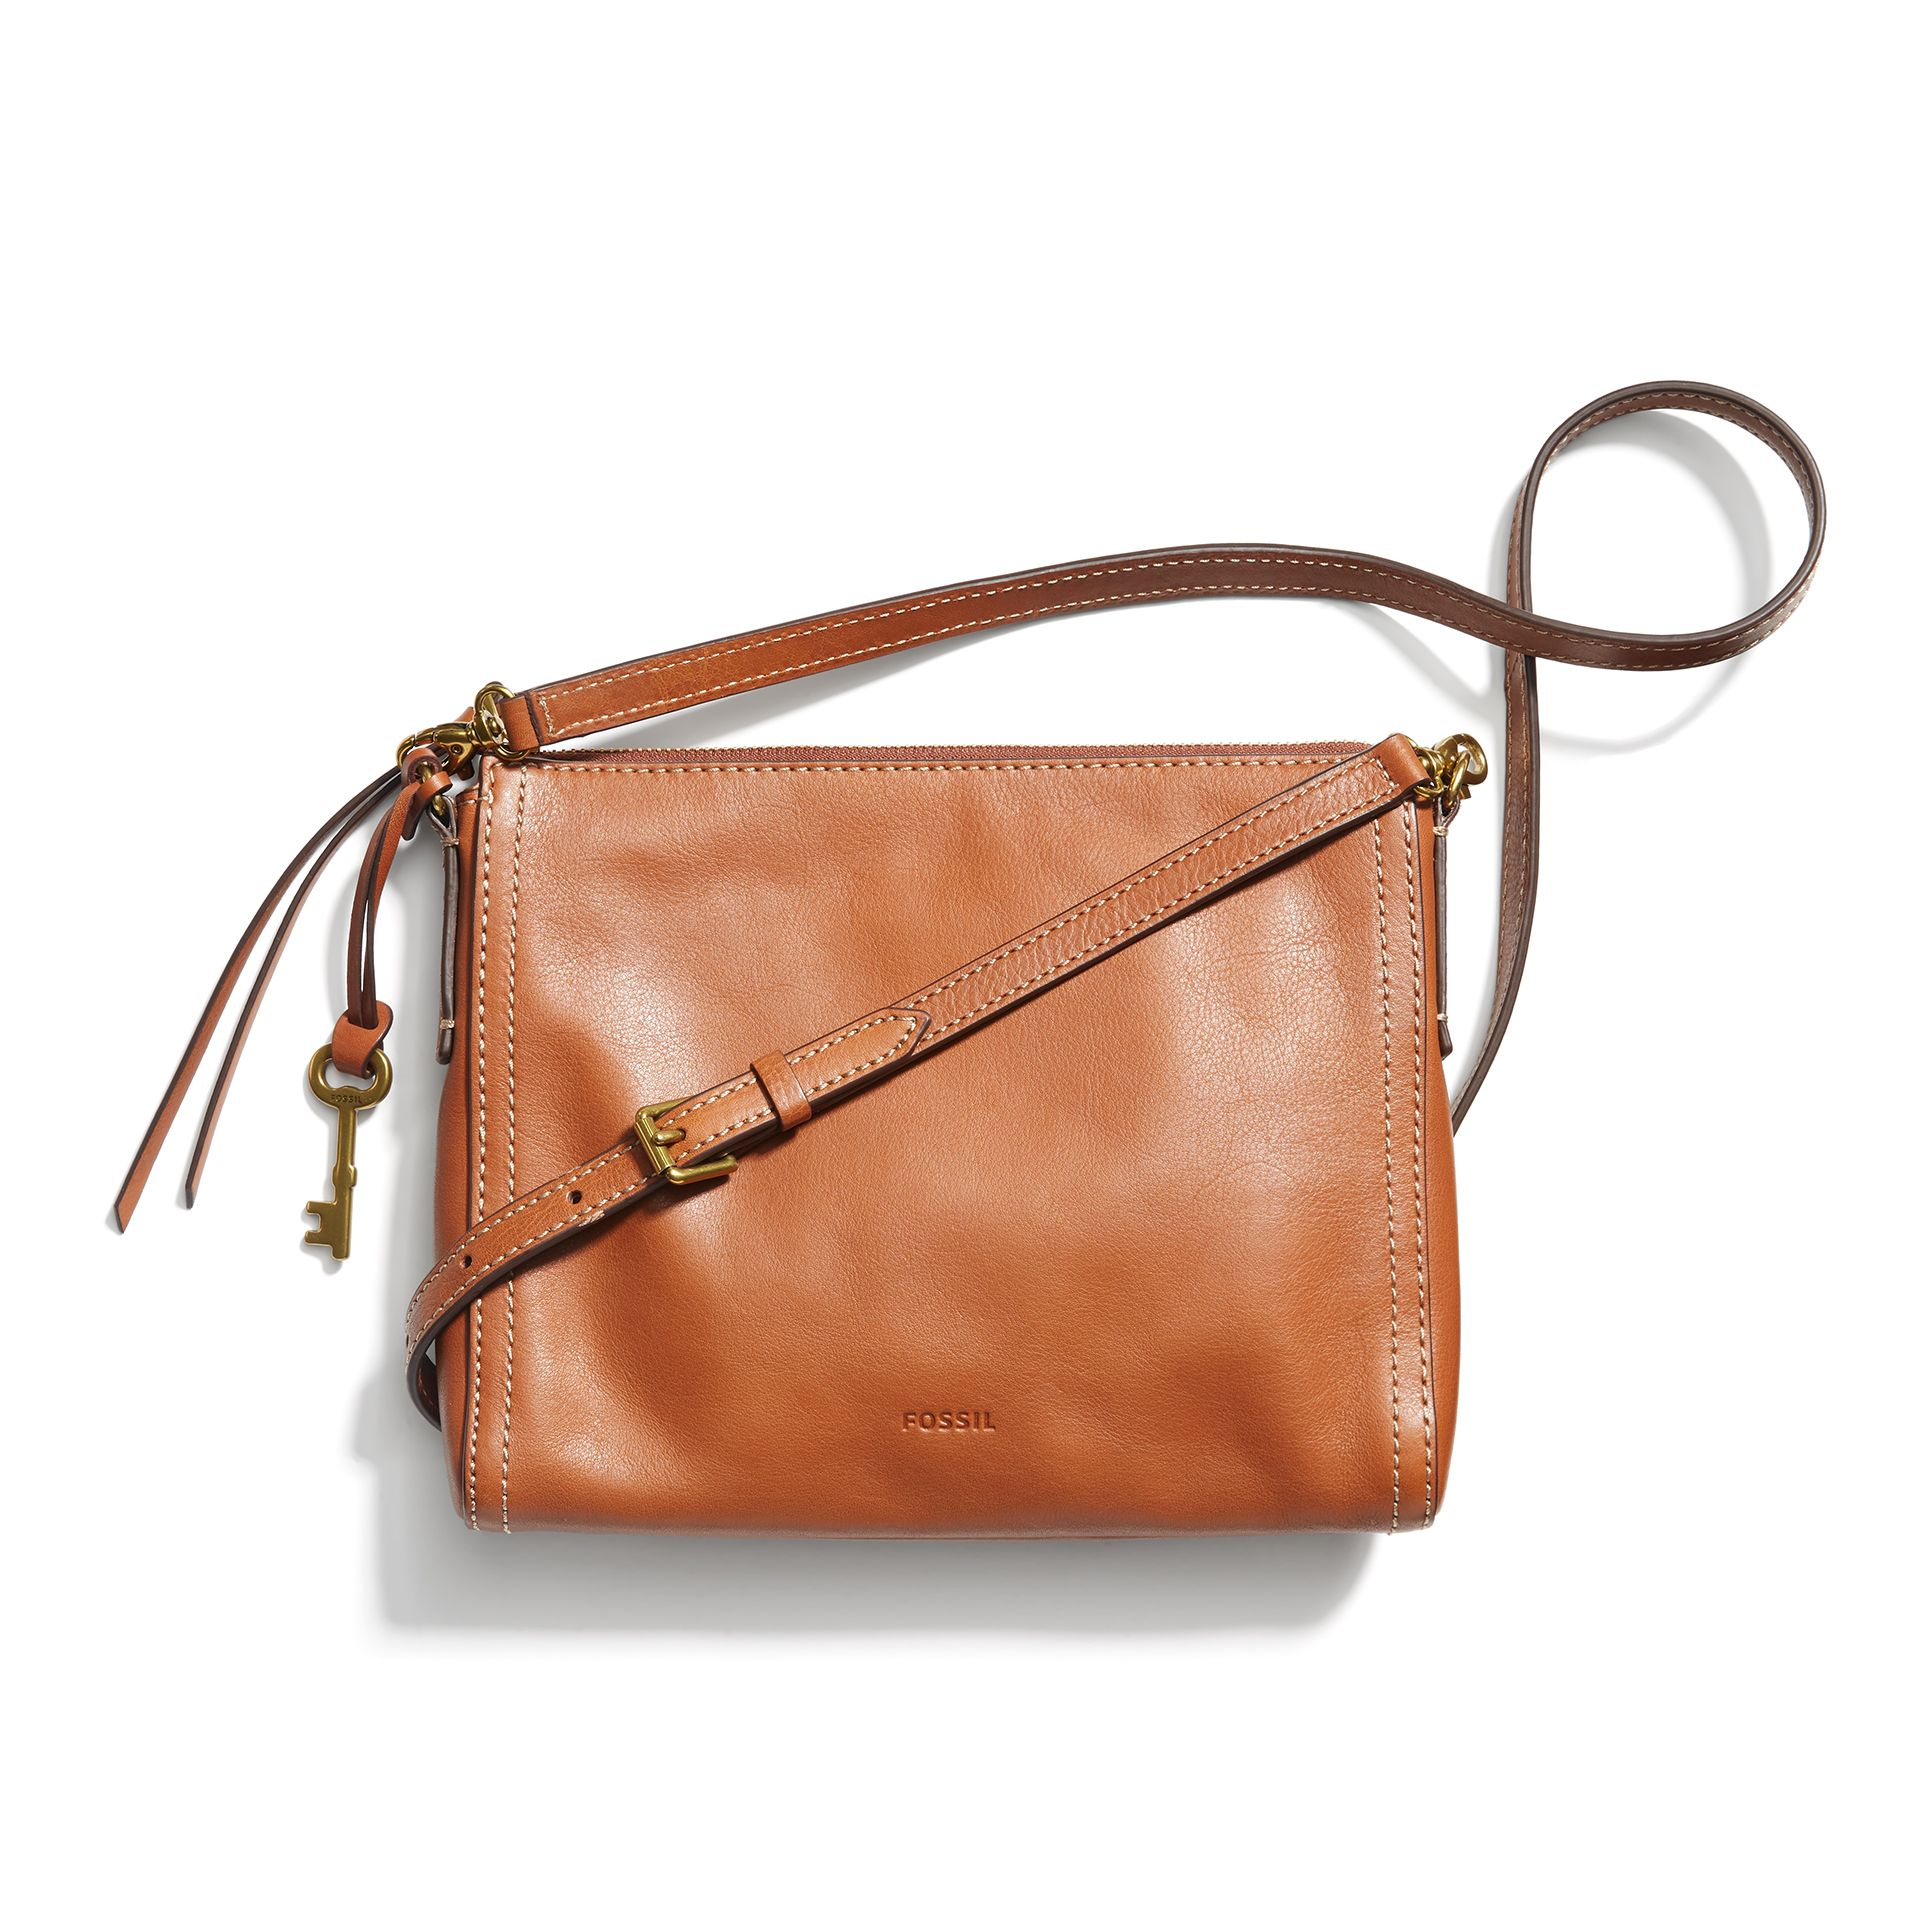 dbf292f20c78 Stitch Fix Spring Must-Haves  Leather Cross-body Bag